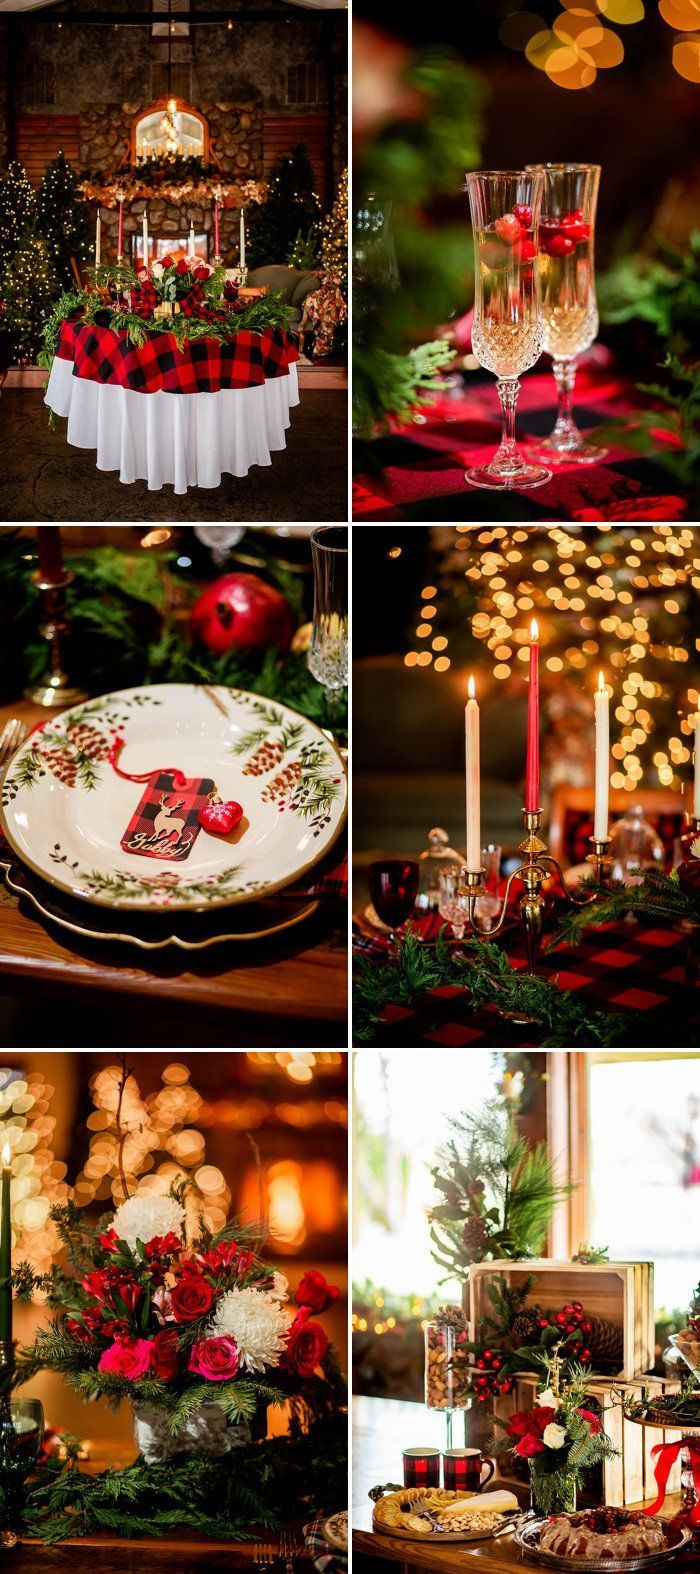 Rustic Christmas Table Decor Ideas In 2020 Christmas Table Decorations Colorado Christmas Christmas Wedding